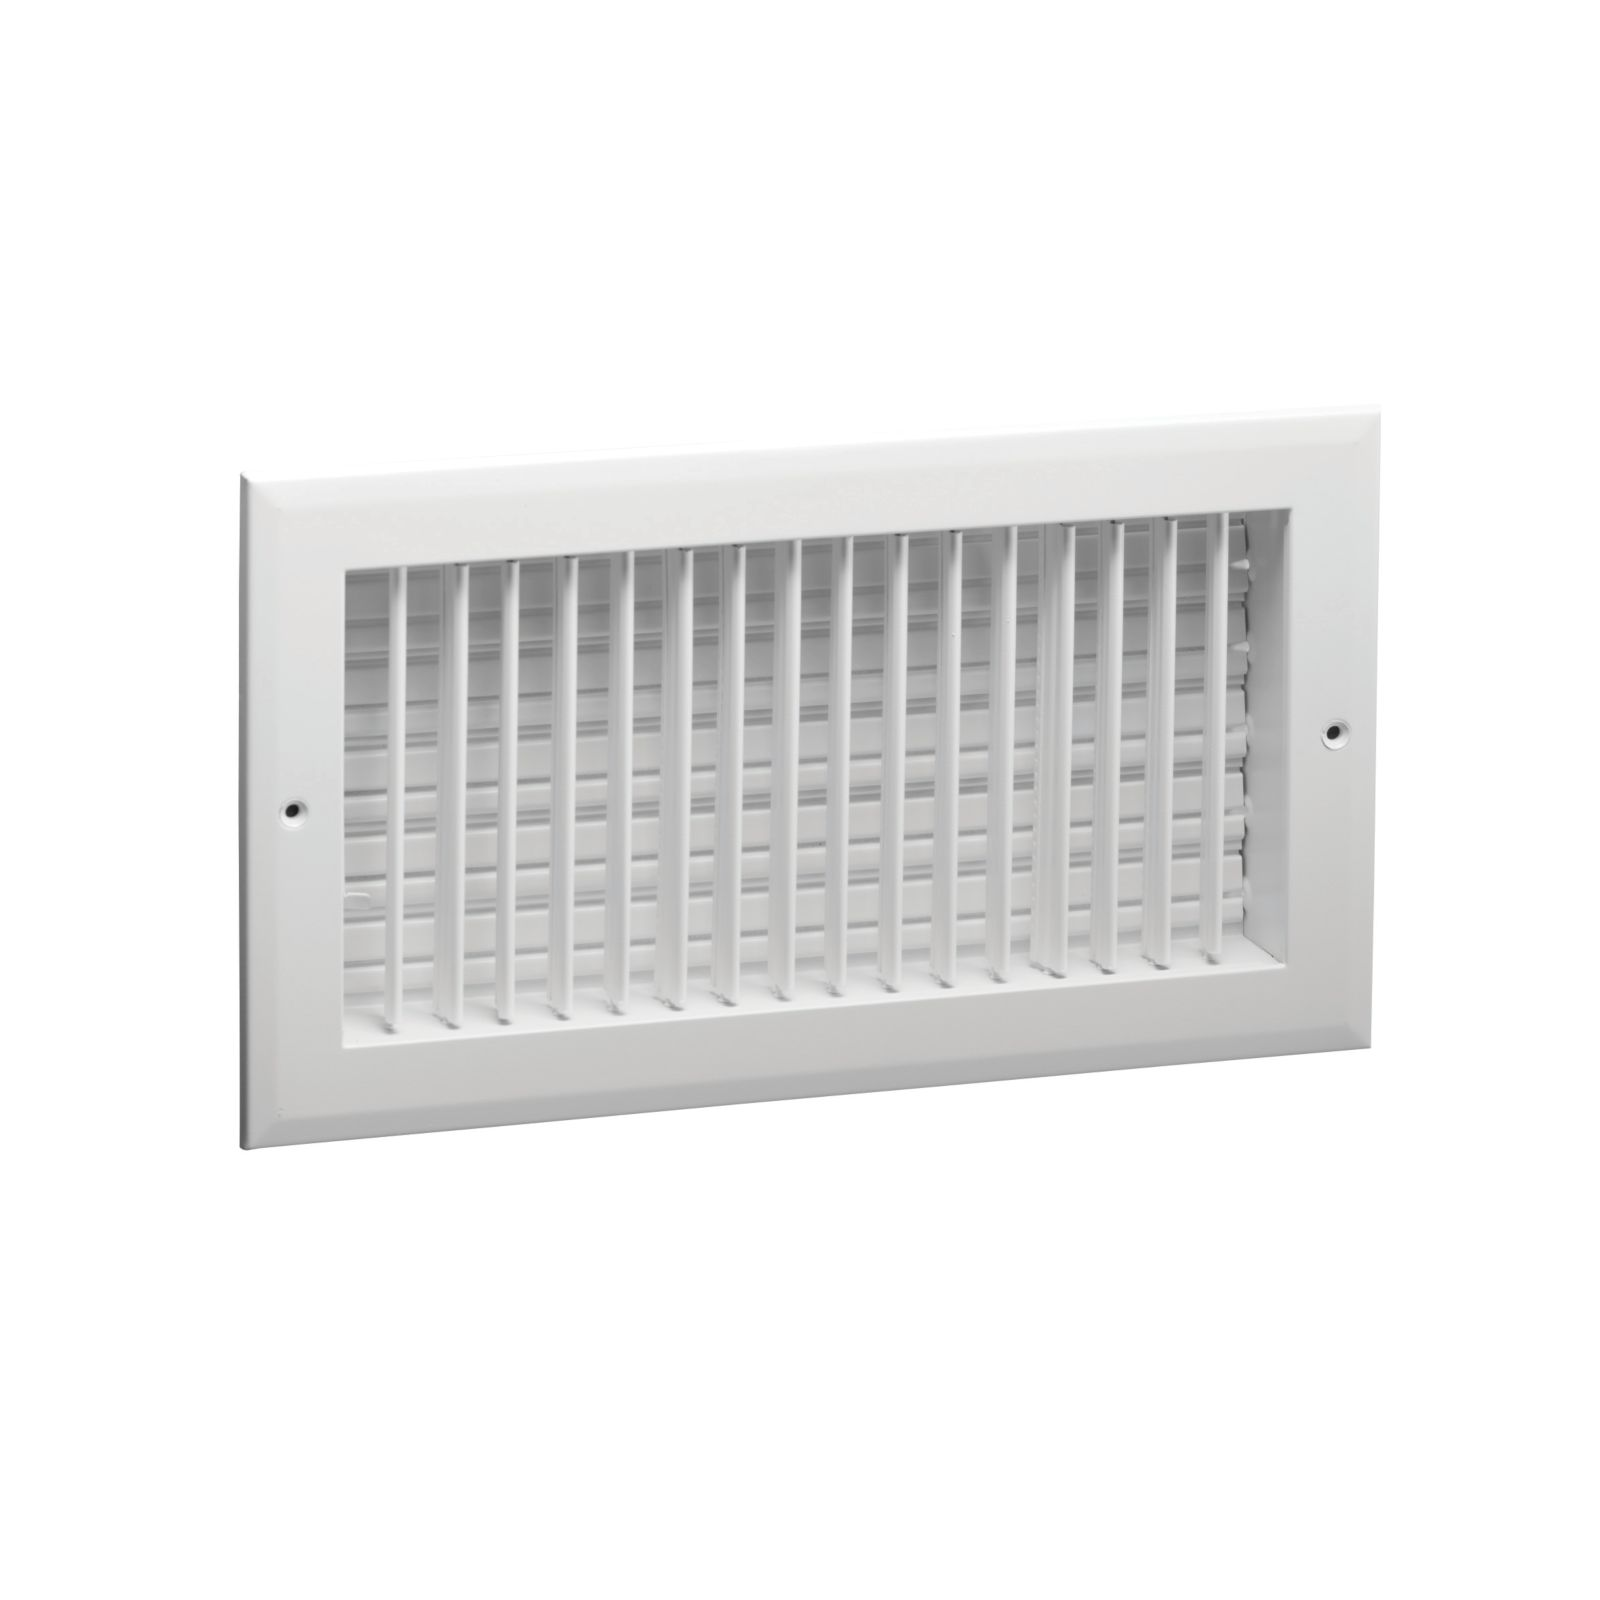 "Hart & Cooley 022445 - Aluminum Straight Blade 4-Way Sidewall/Ceiling Register, Multi-Shutter Damper, White Finish, 10"" X 4"""